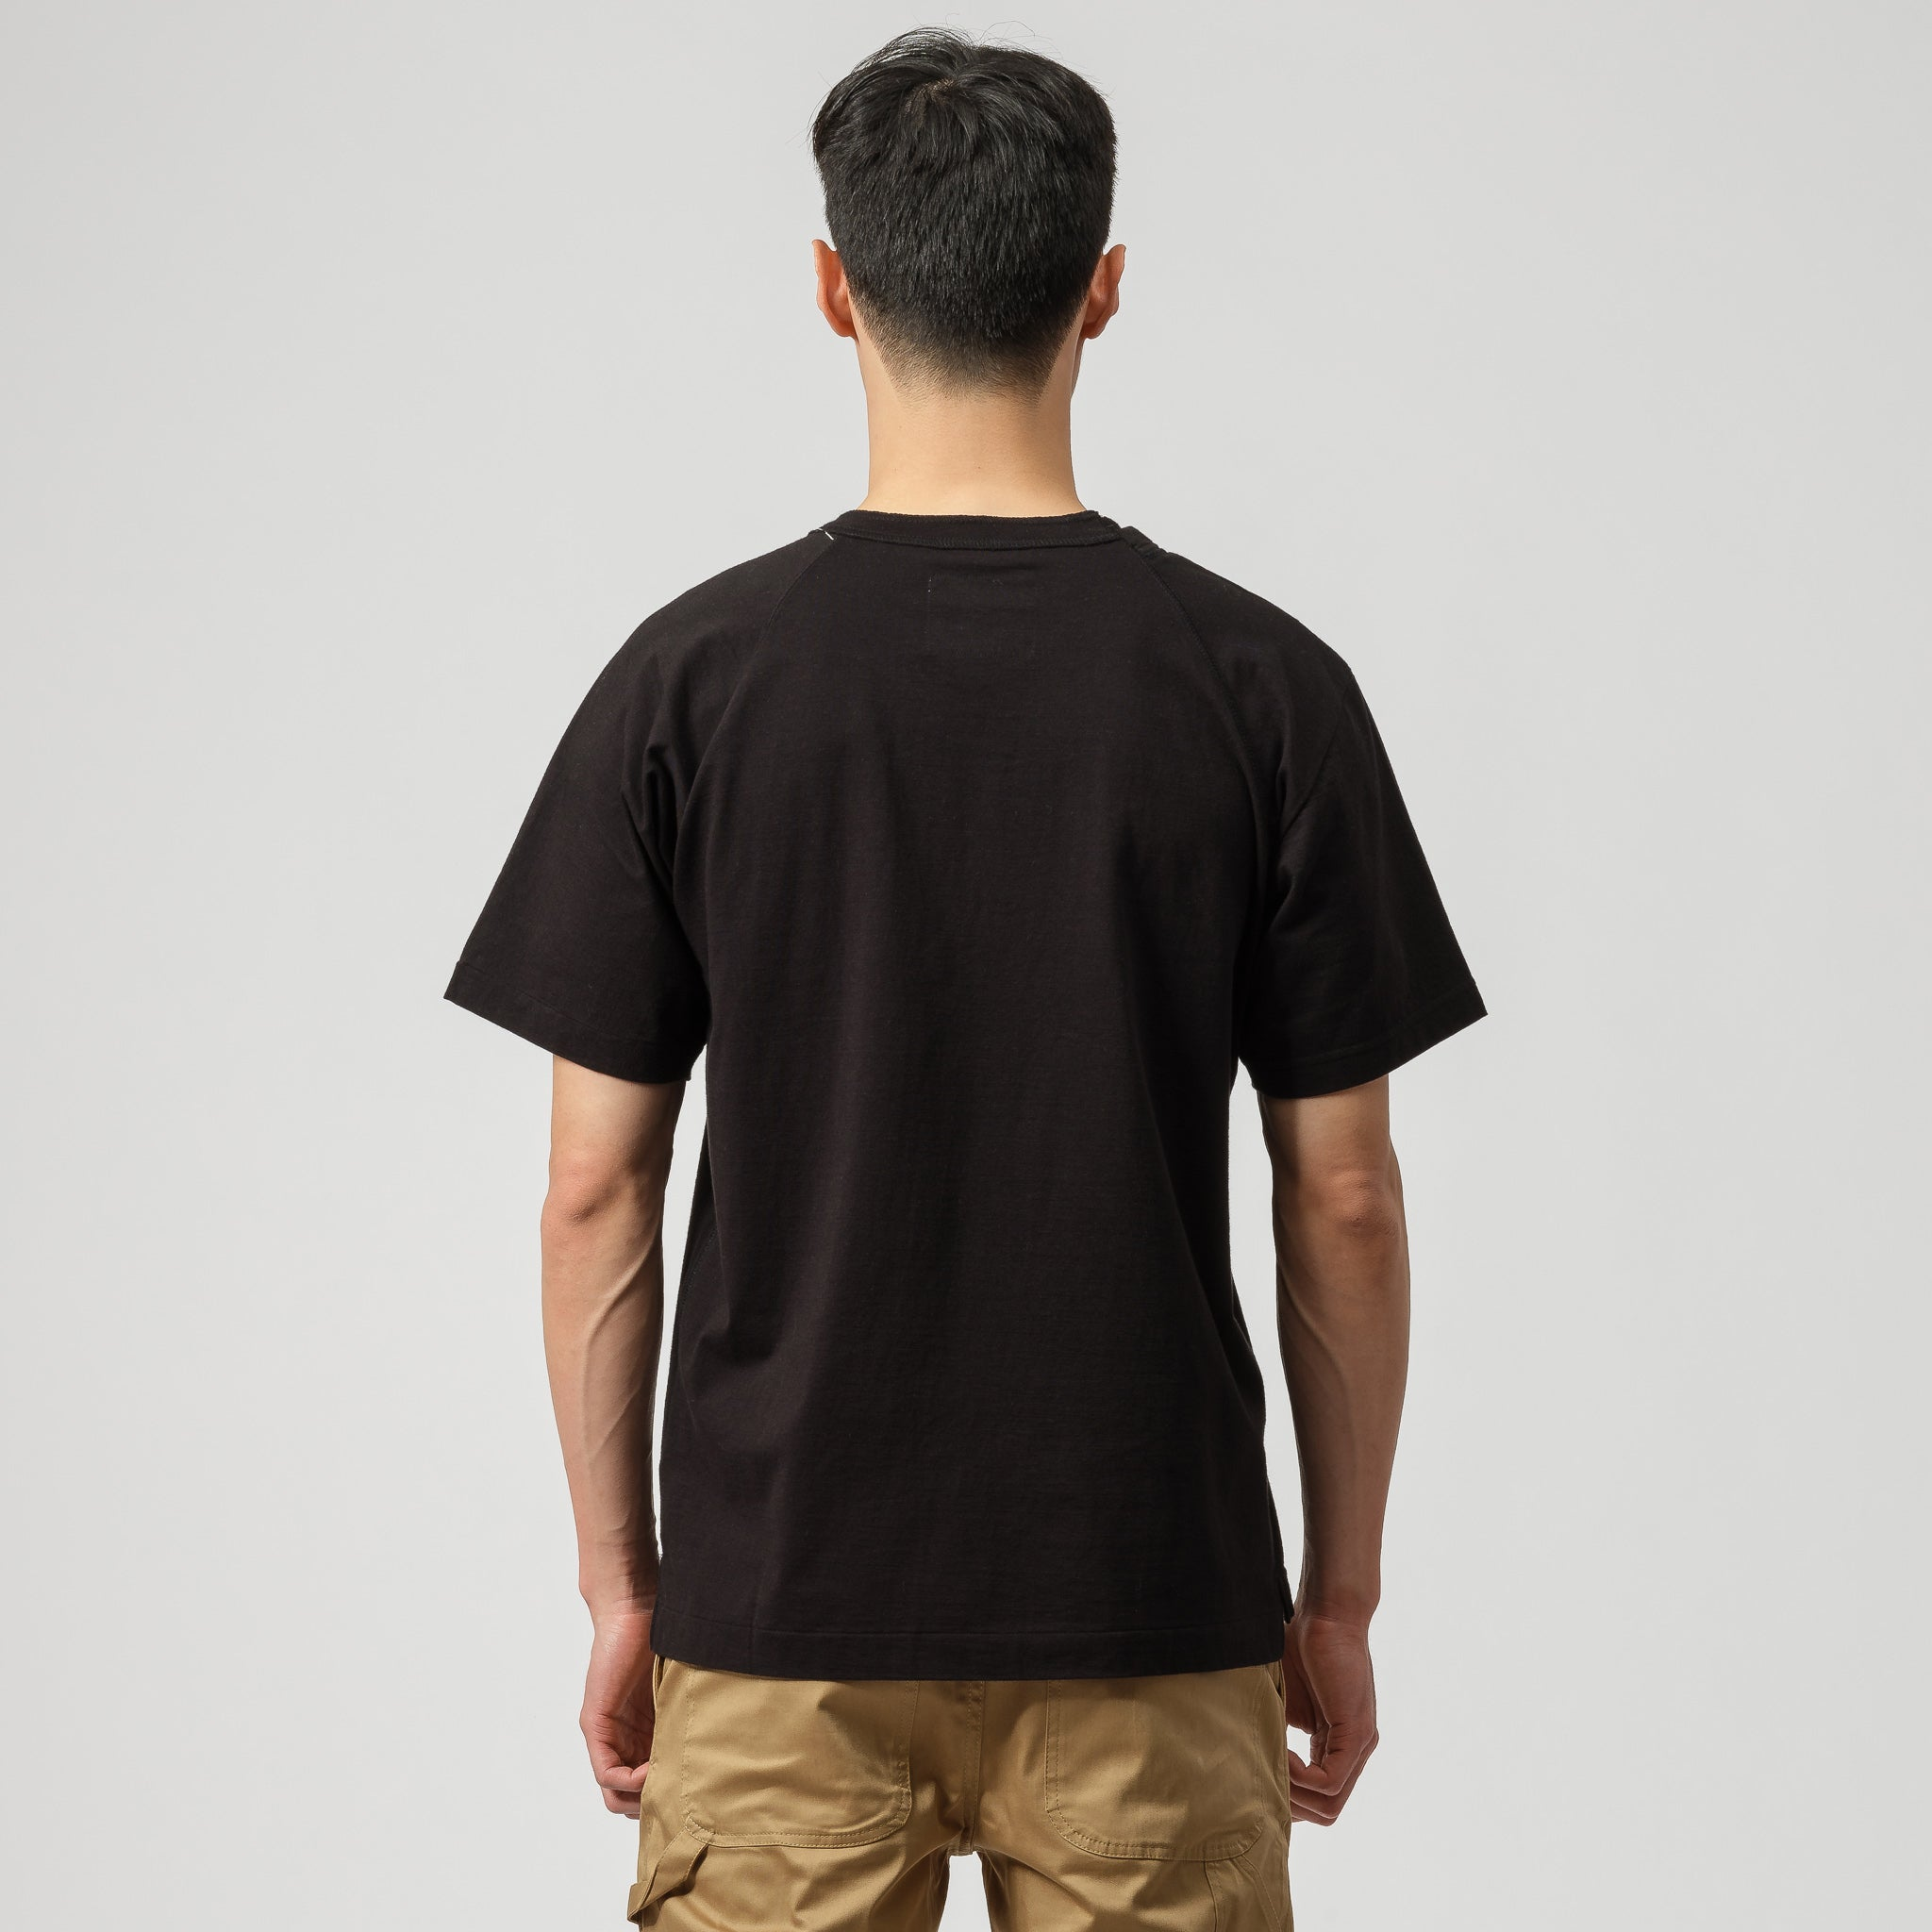 x Dr Woo Embroidered T-Shirt in Black